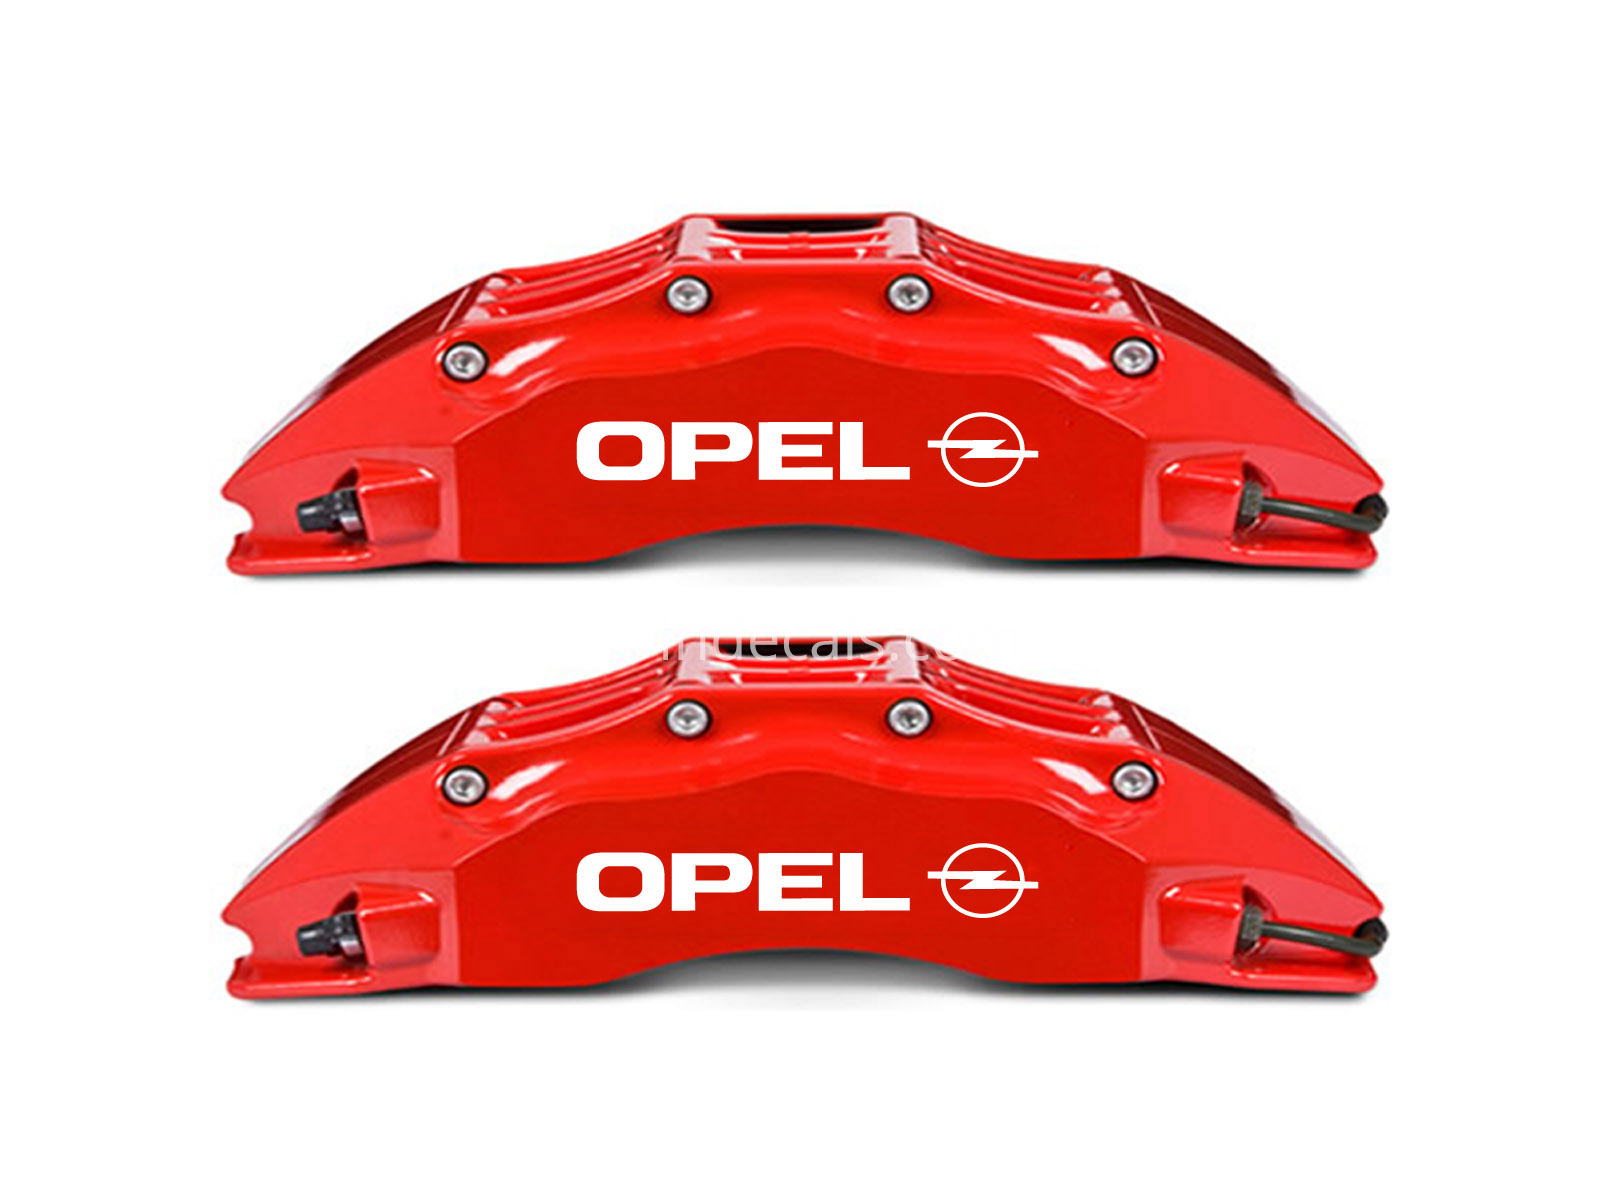 6 x Opel Stickers for Brakes - White